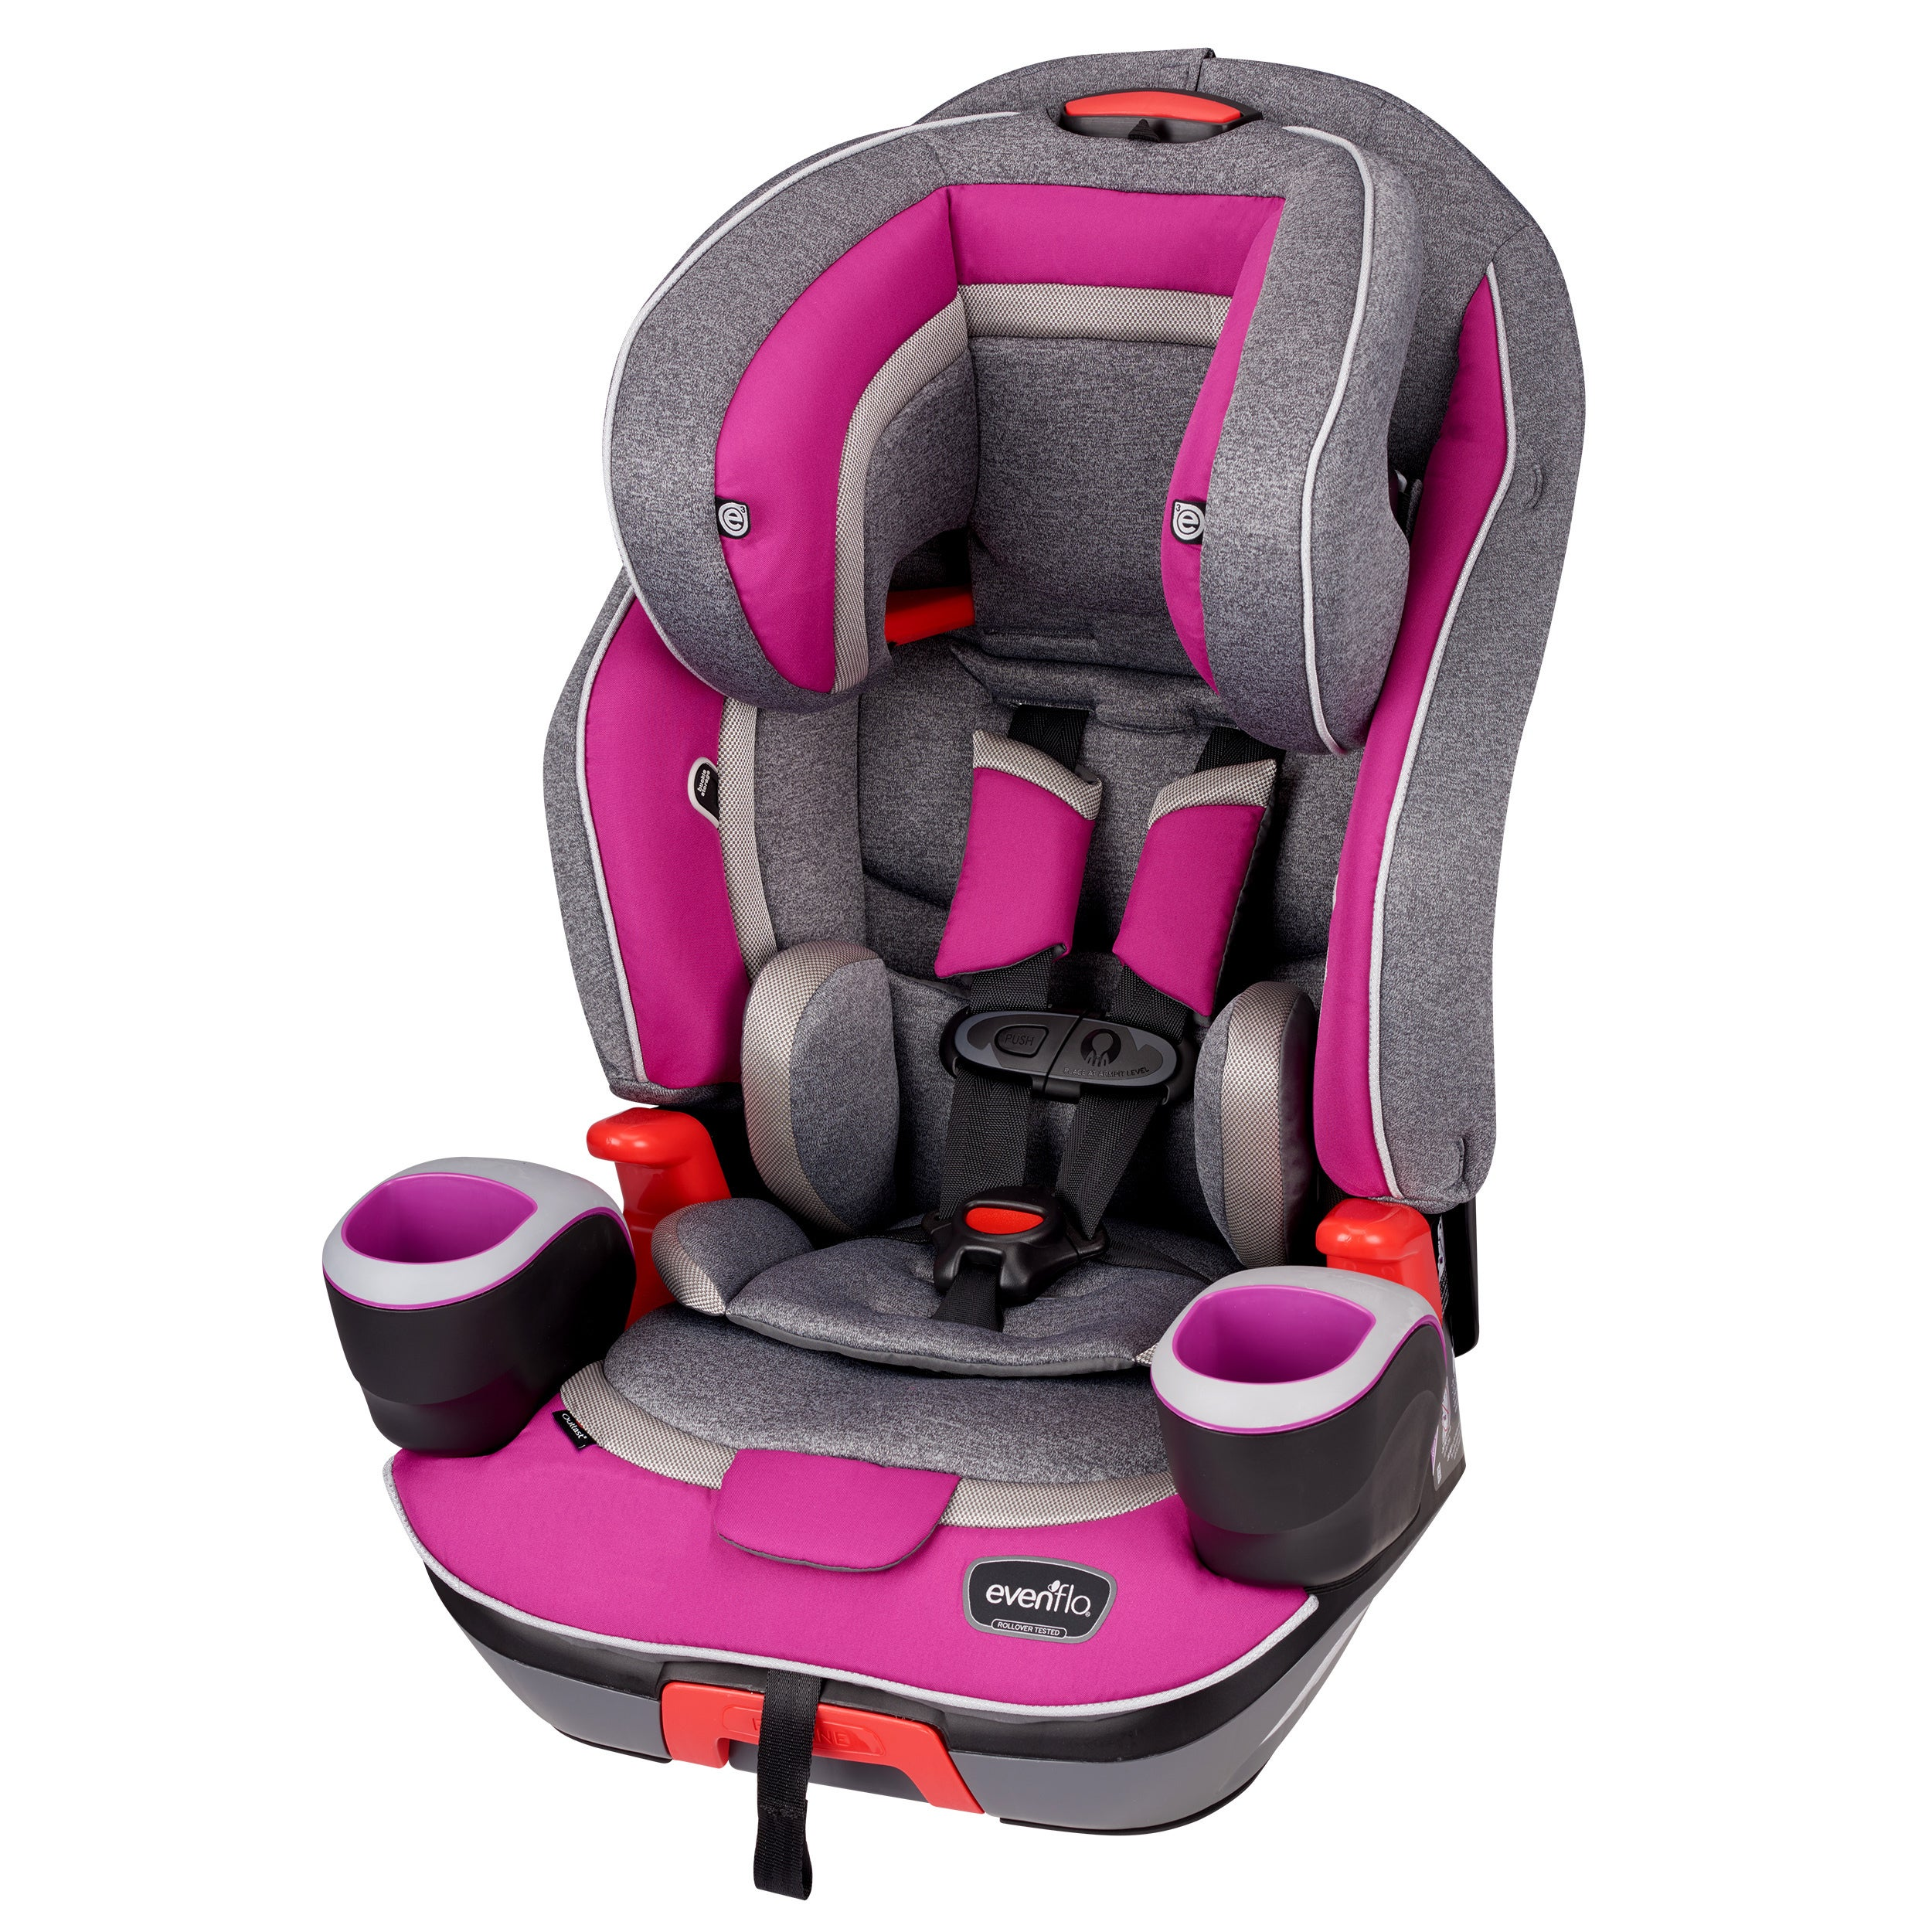 Shop Evenflo Platinum Evolve 3 In 1 Combination Booster Car Seat